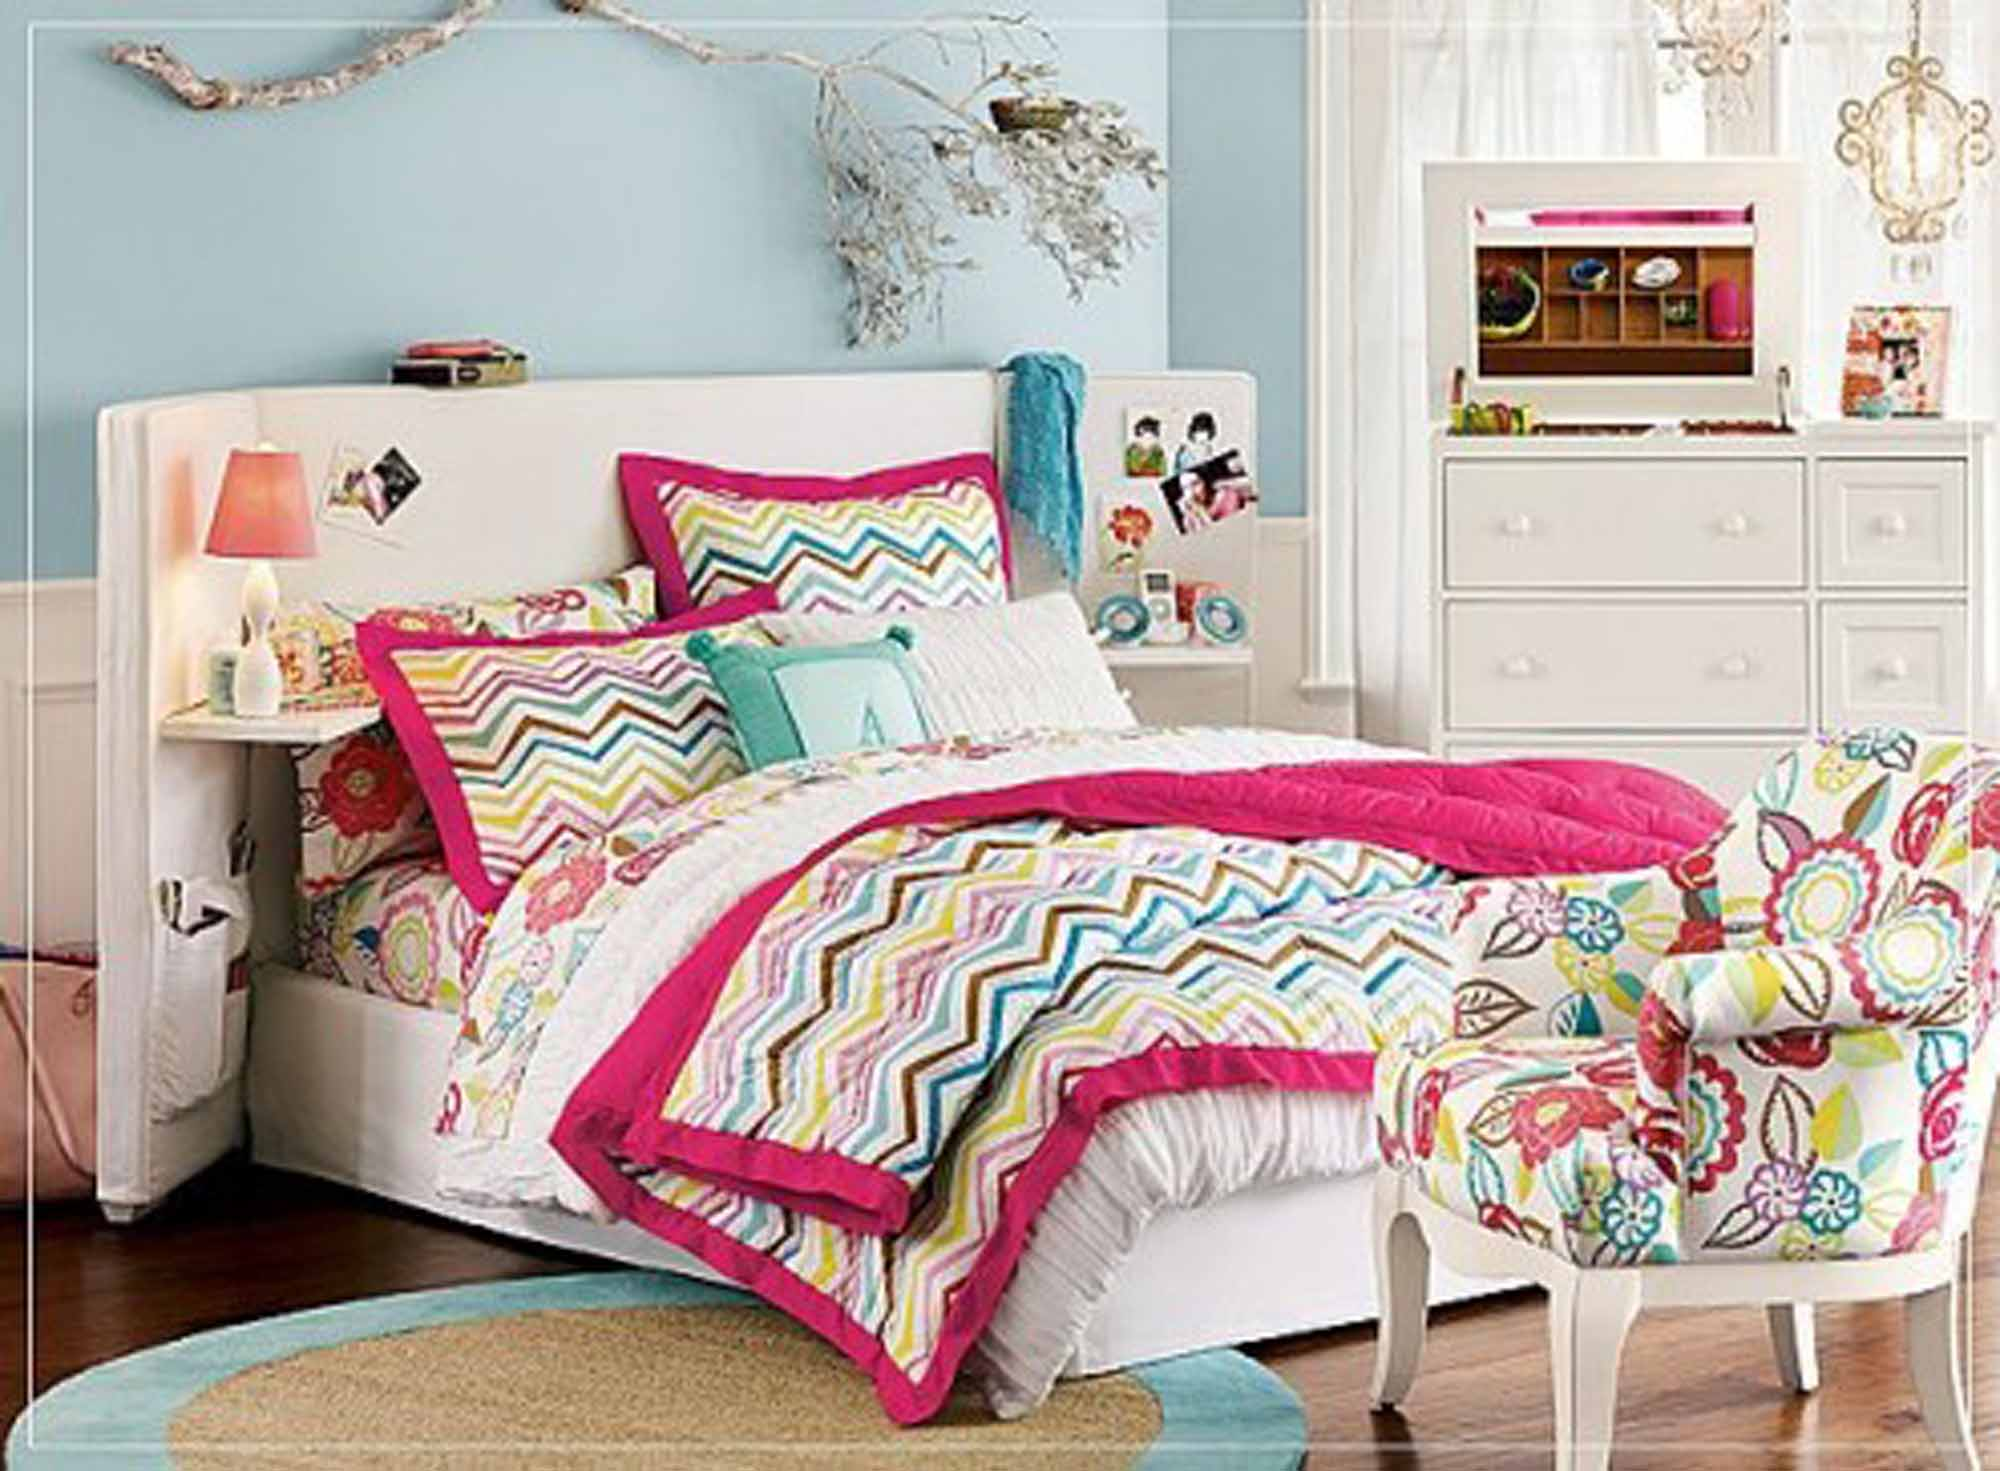 Teenage bedroom ideas for remodeling the bedroom - Cute girl room ideas ...